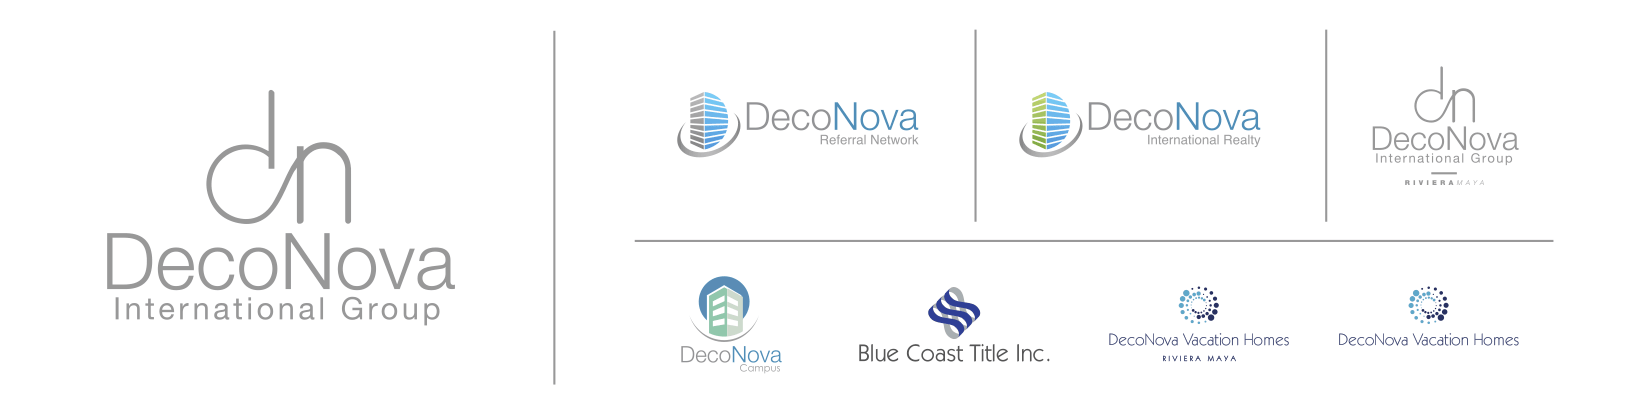 deconova-holdings